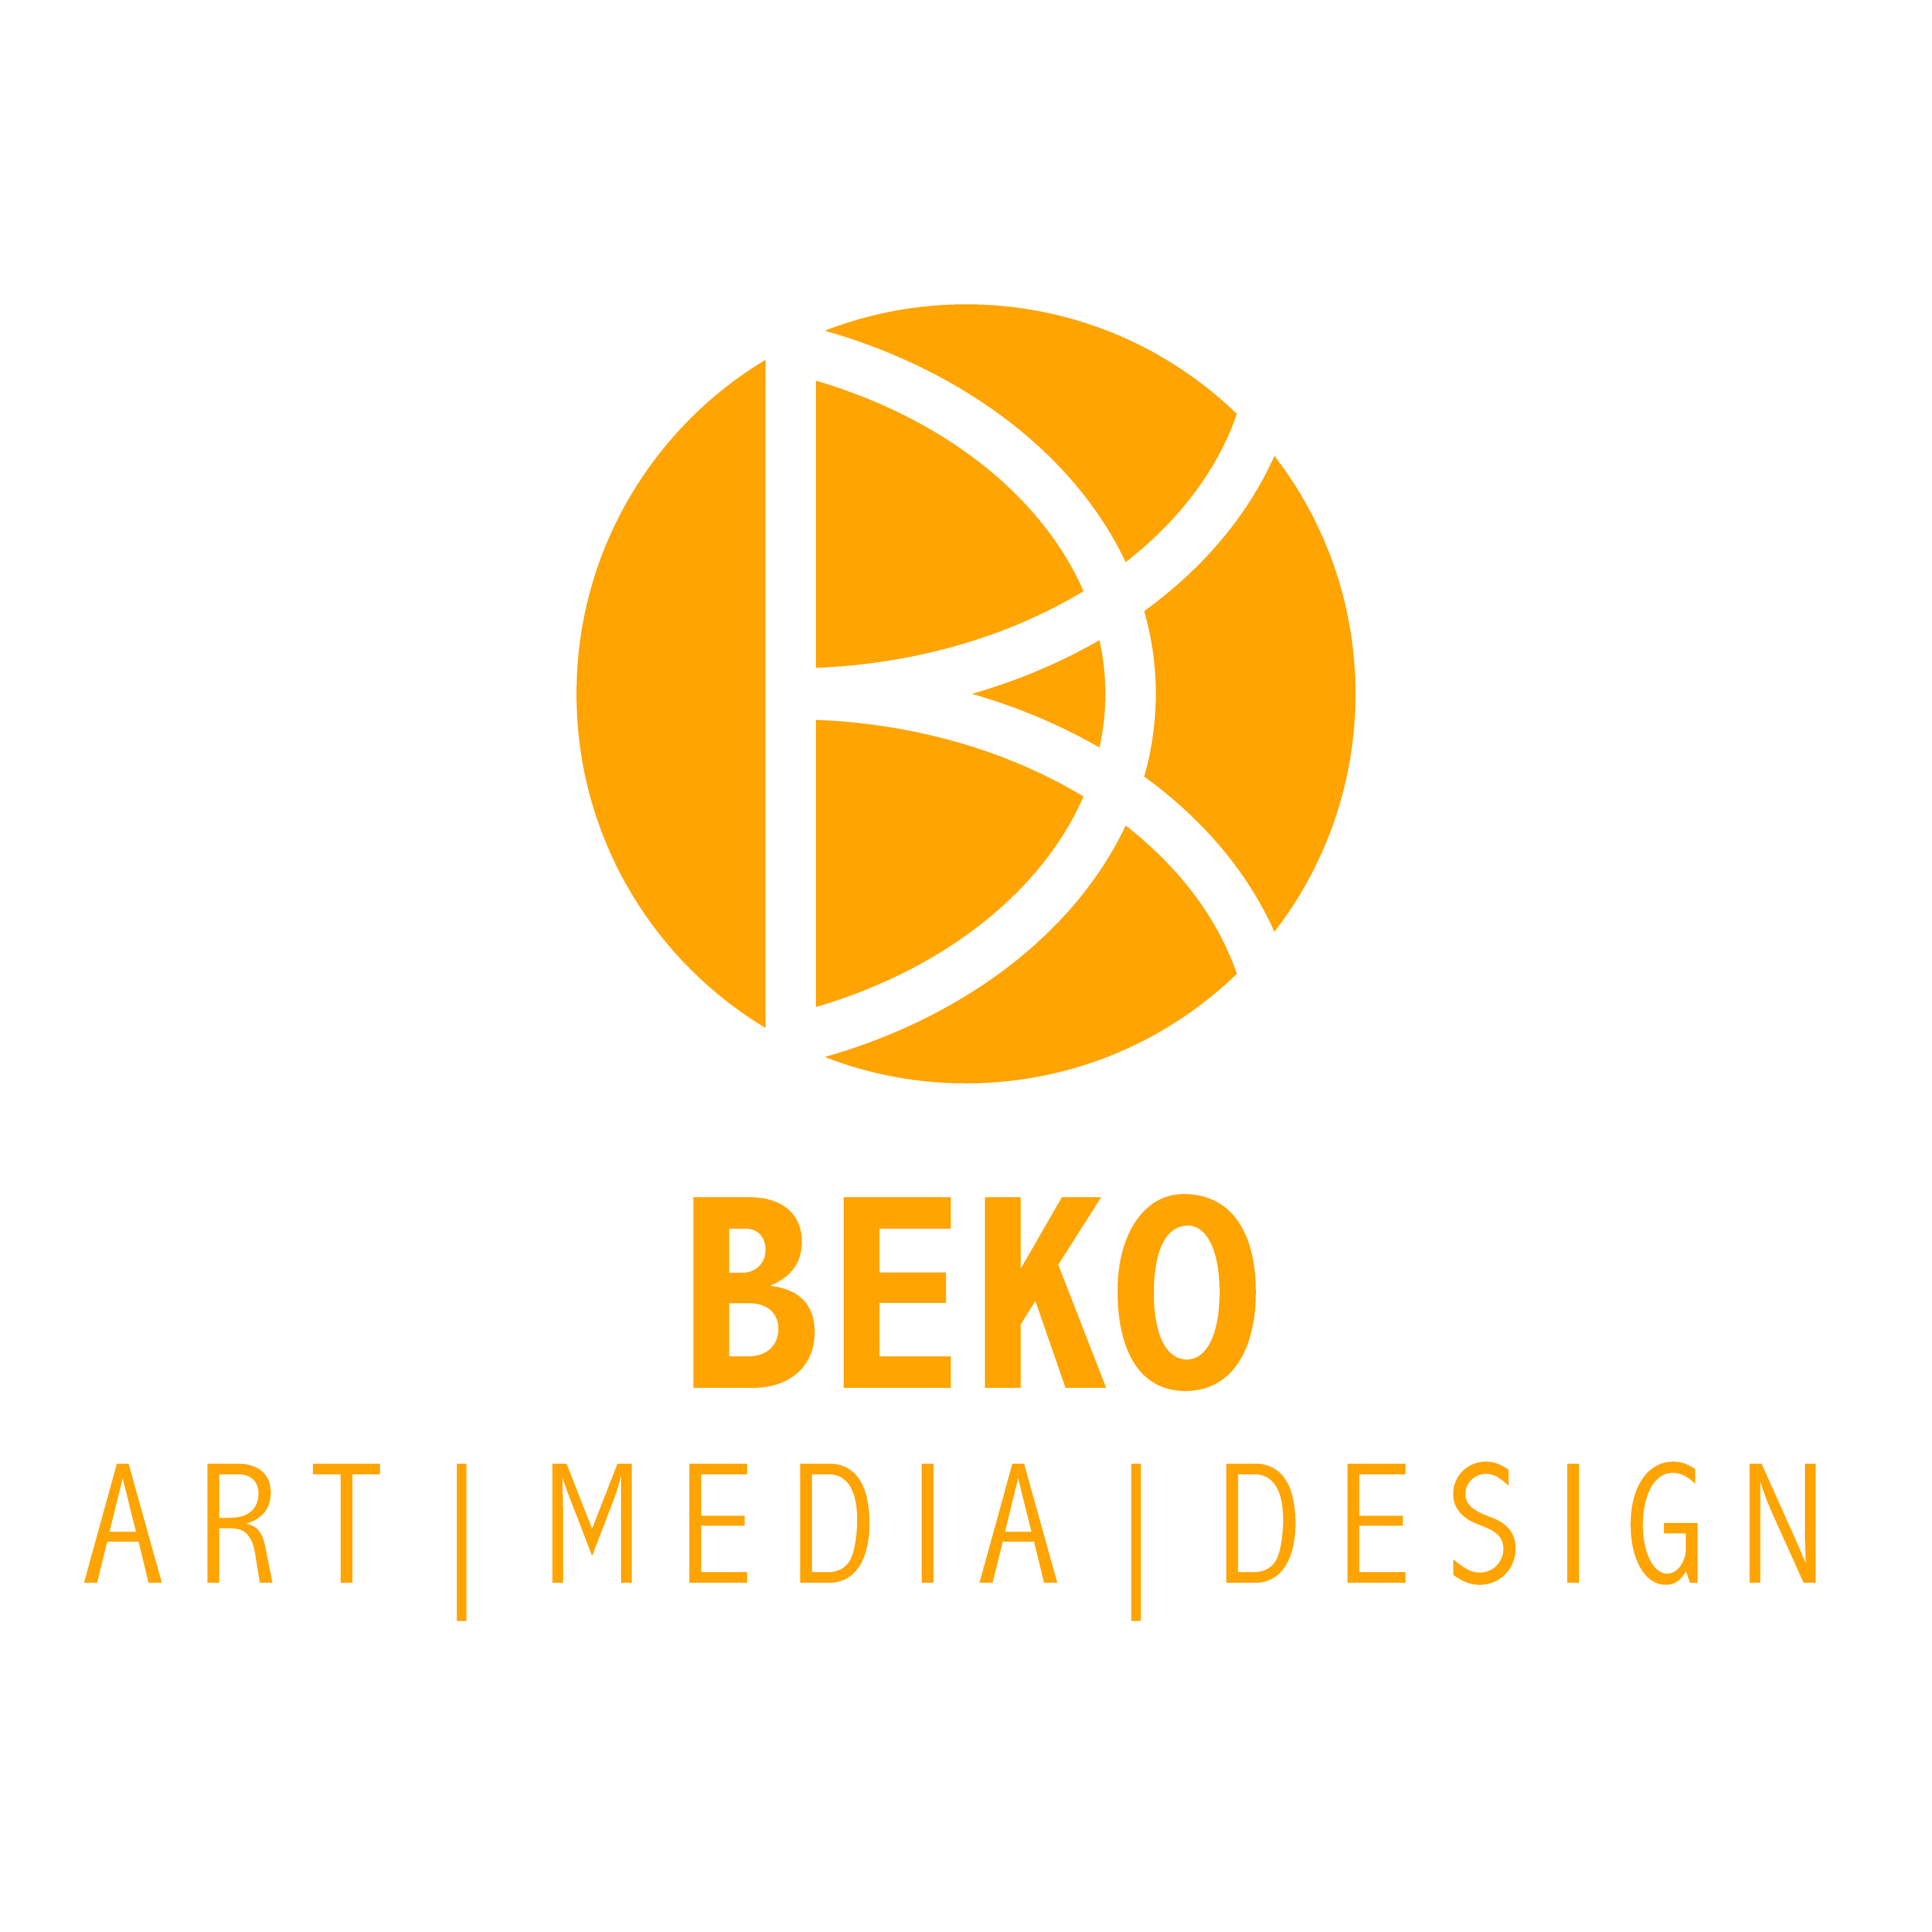 BEKO Art | Media | Design